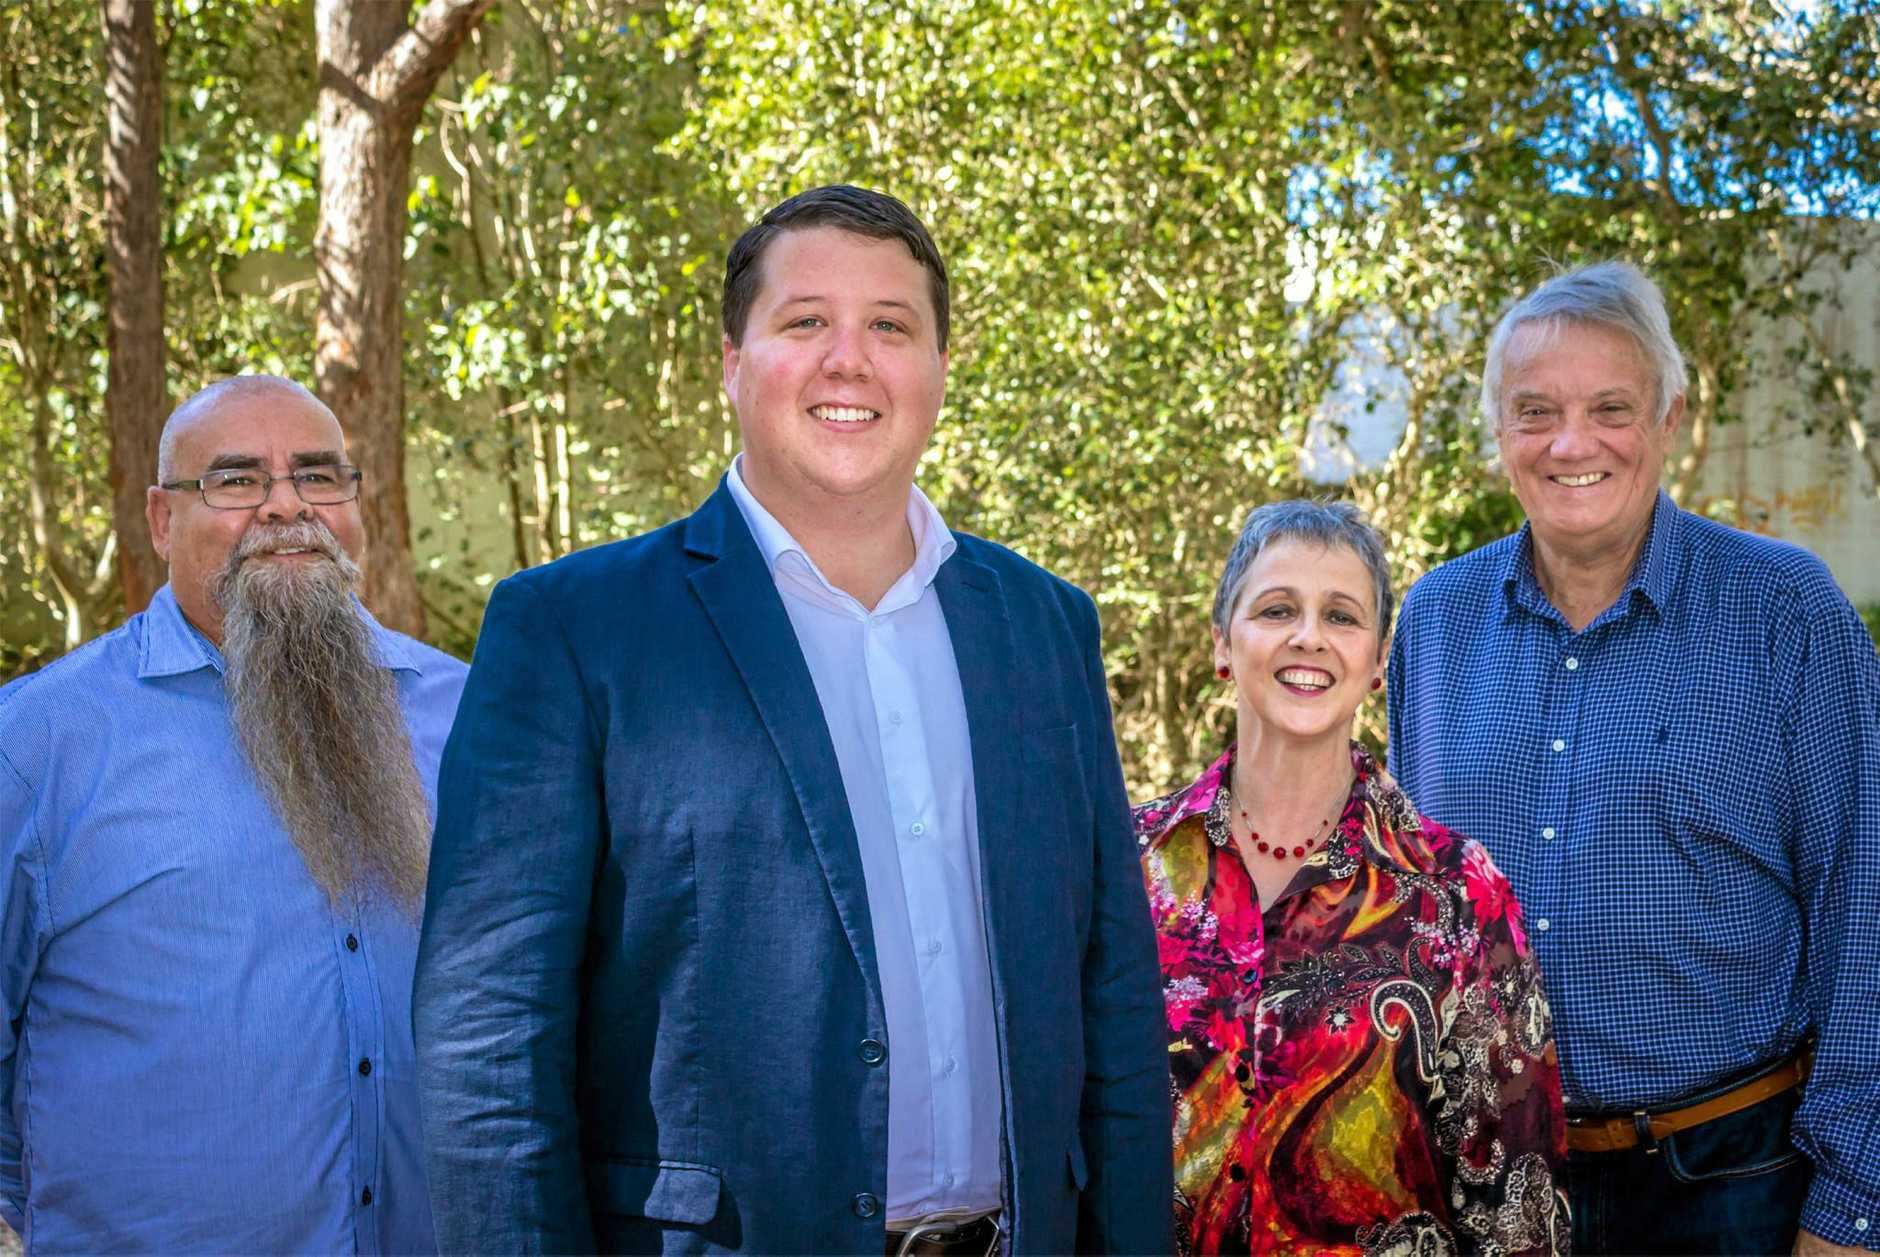 ON THE CAMPAIGN TRAIL: Tweed Shire Council Candidates Russell Logan, Reece Byrnes, Marie Rogers and Rob Learmonth.